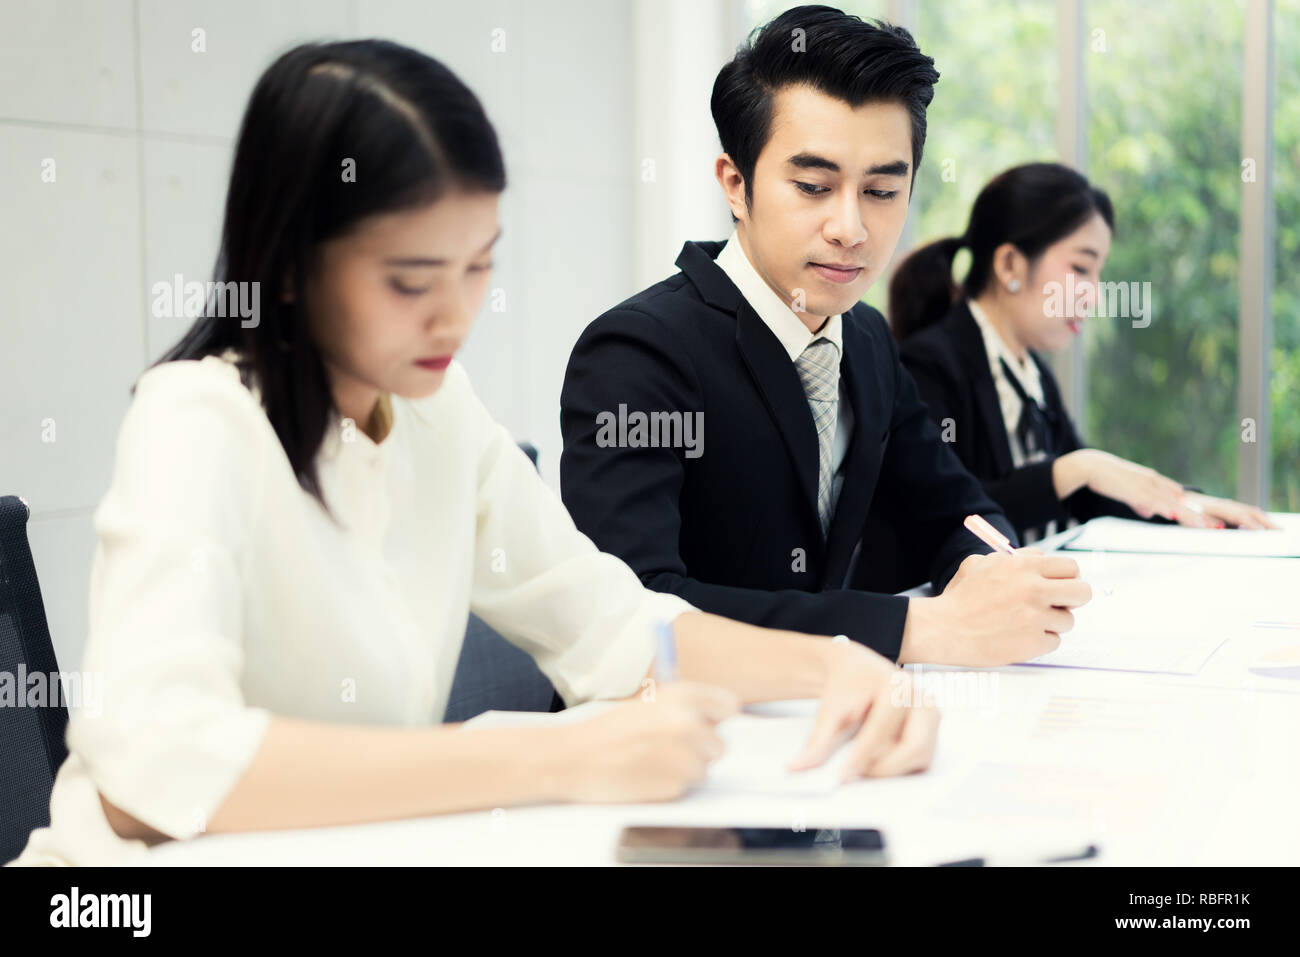 Inquisitive curious businessman with bad manners sneakly looking at report of businesswoman trying to steal idea of competitor, copying work at corpor - Stock Image